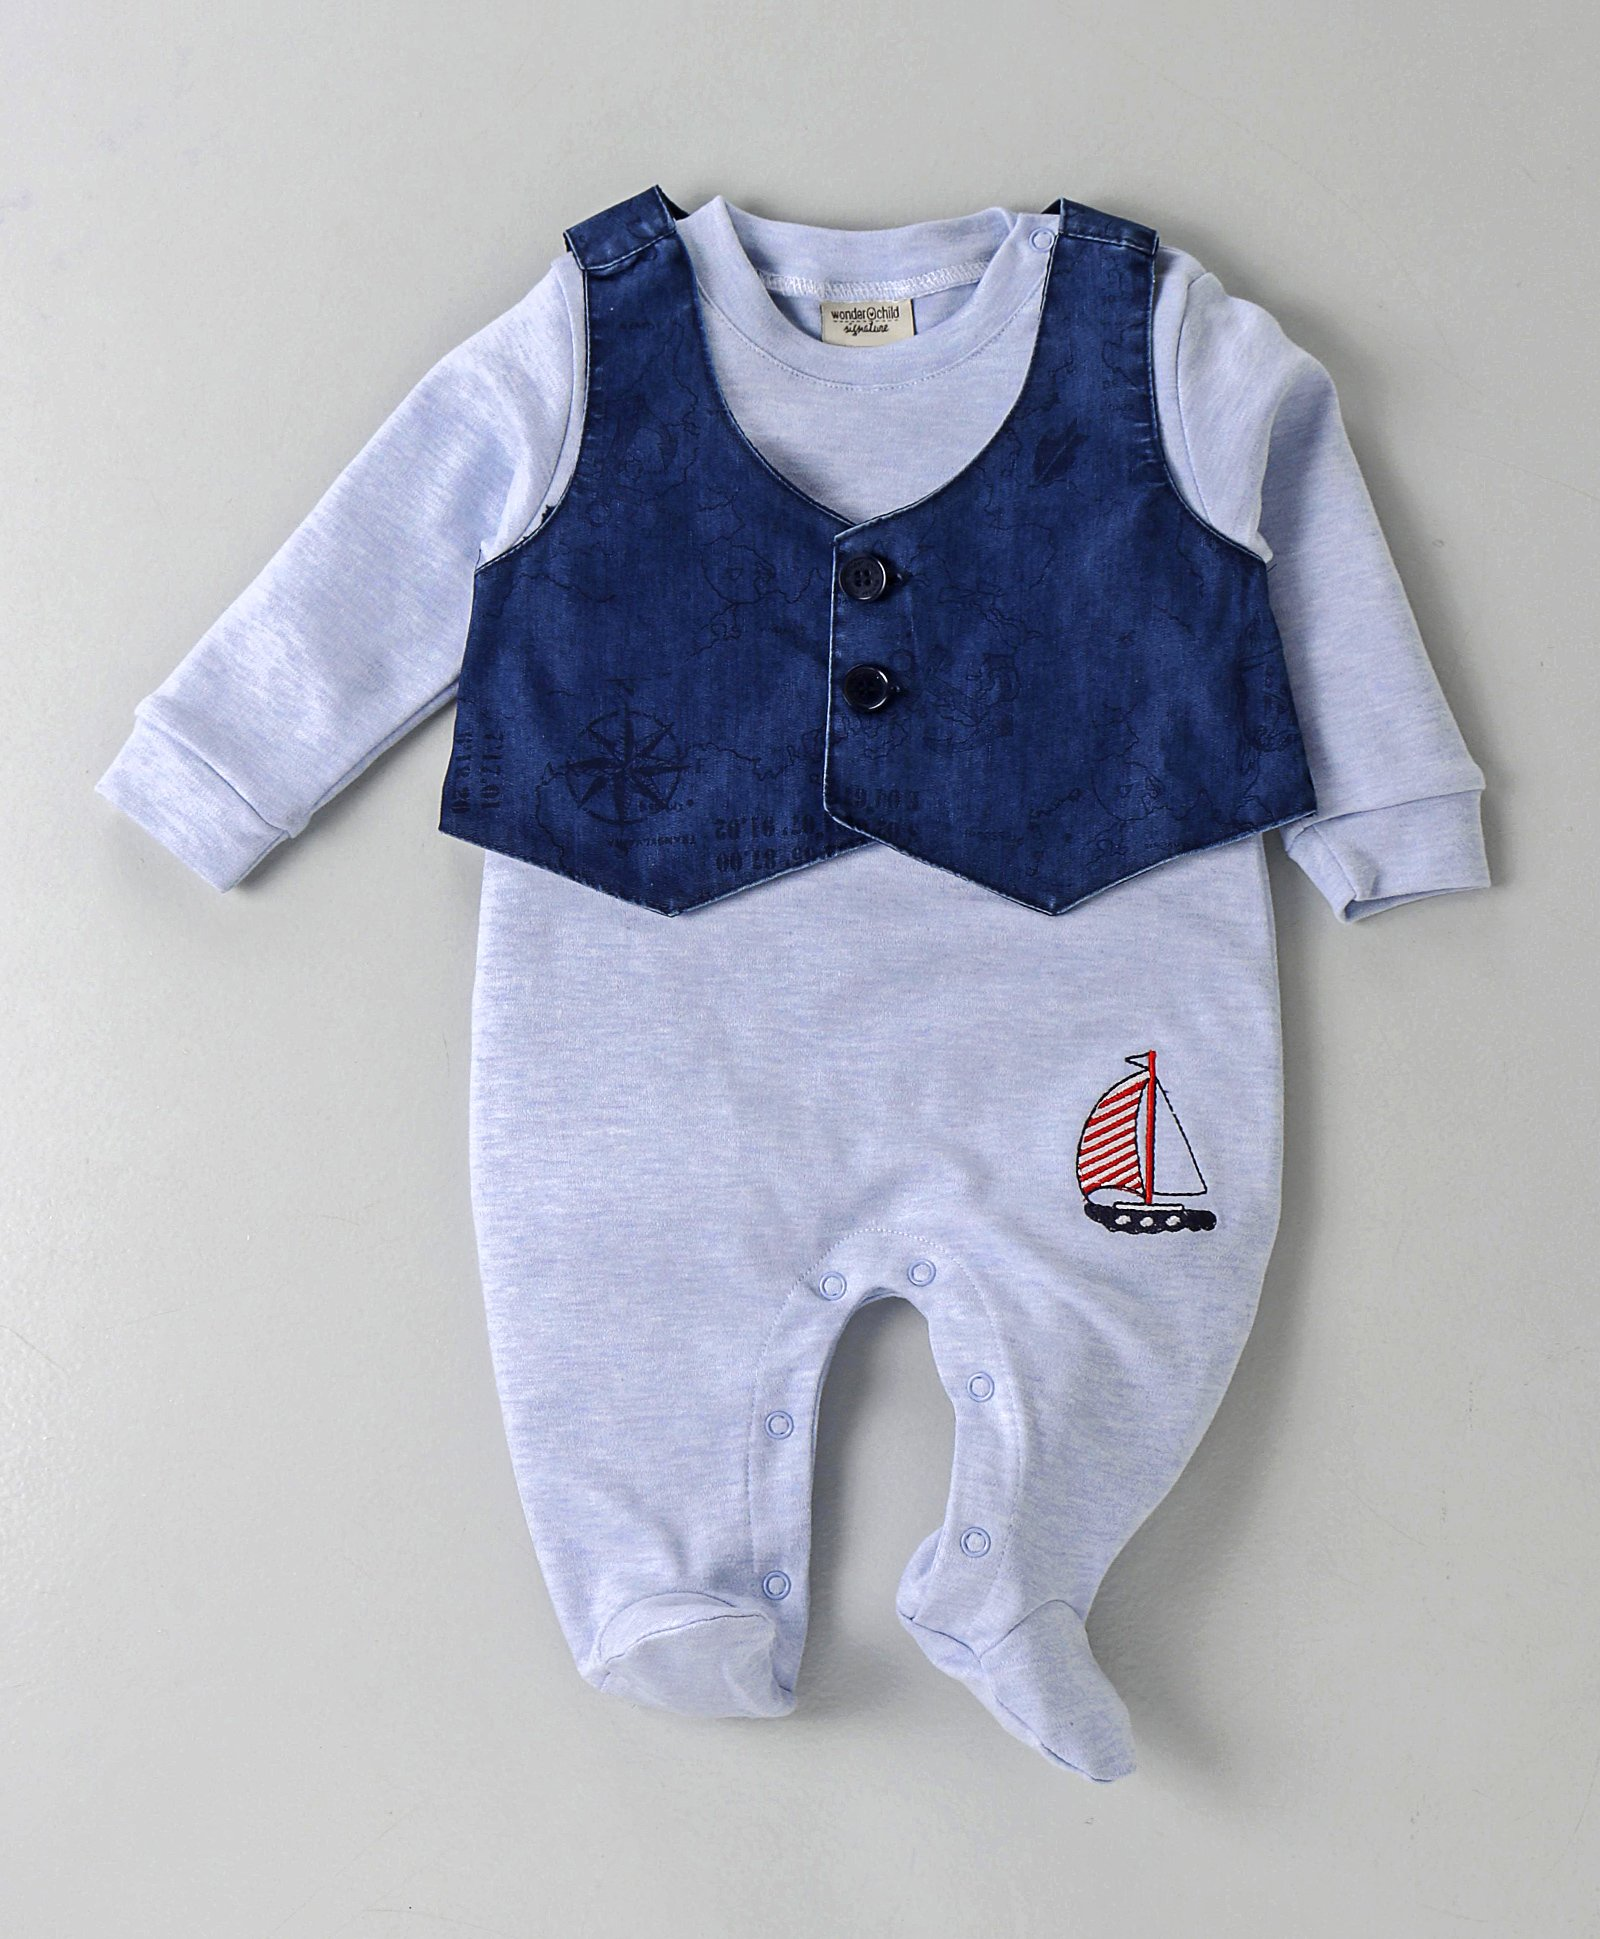 8d01eb560c5a Buy Wonderchild Full Sleeves Romper With Map Printed Jacket Blue ...